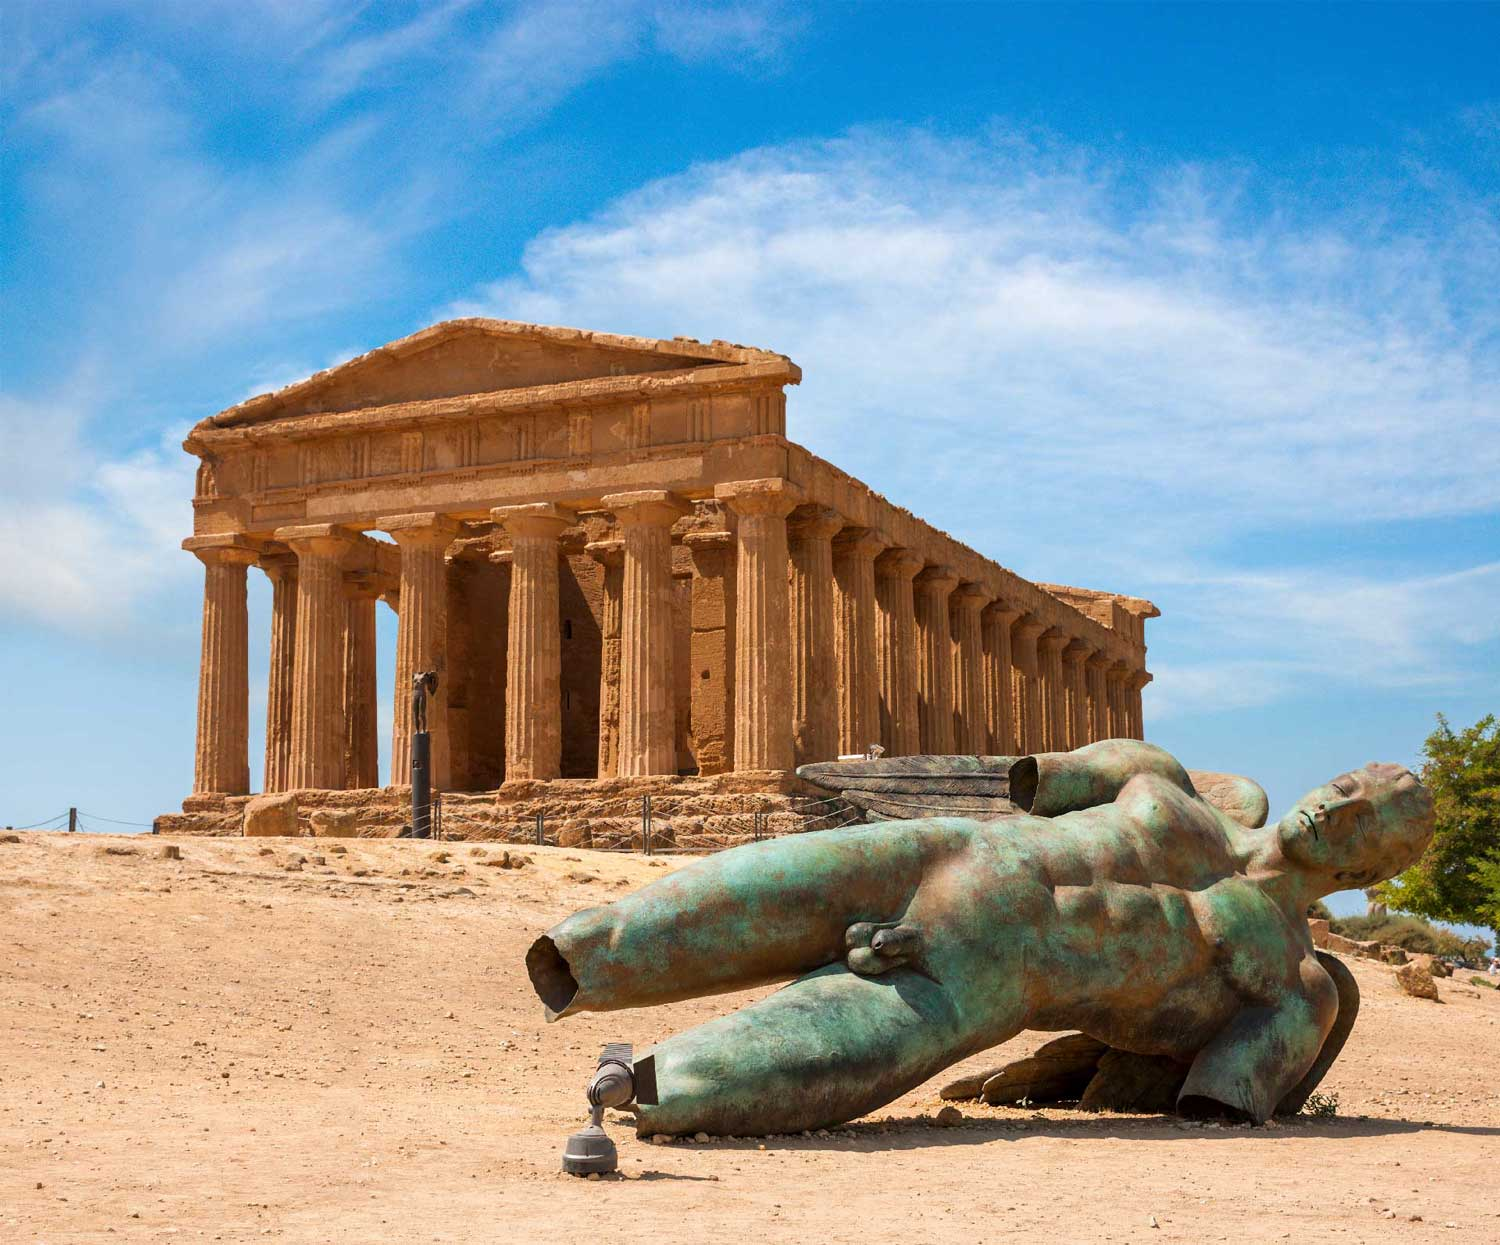 The Province of Agrigento